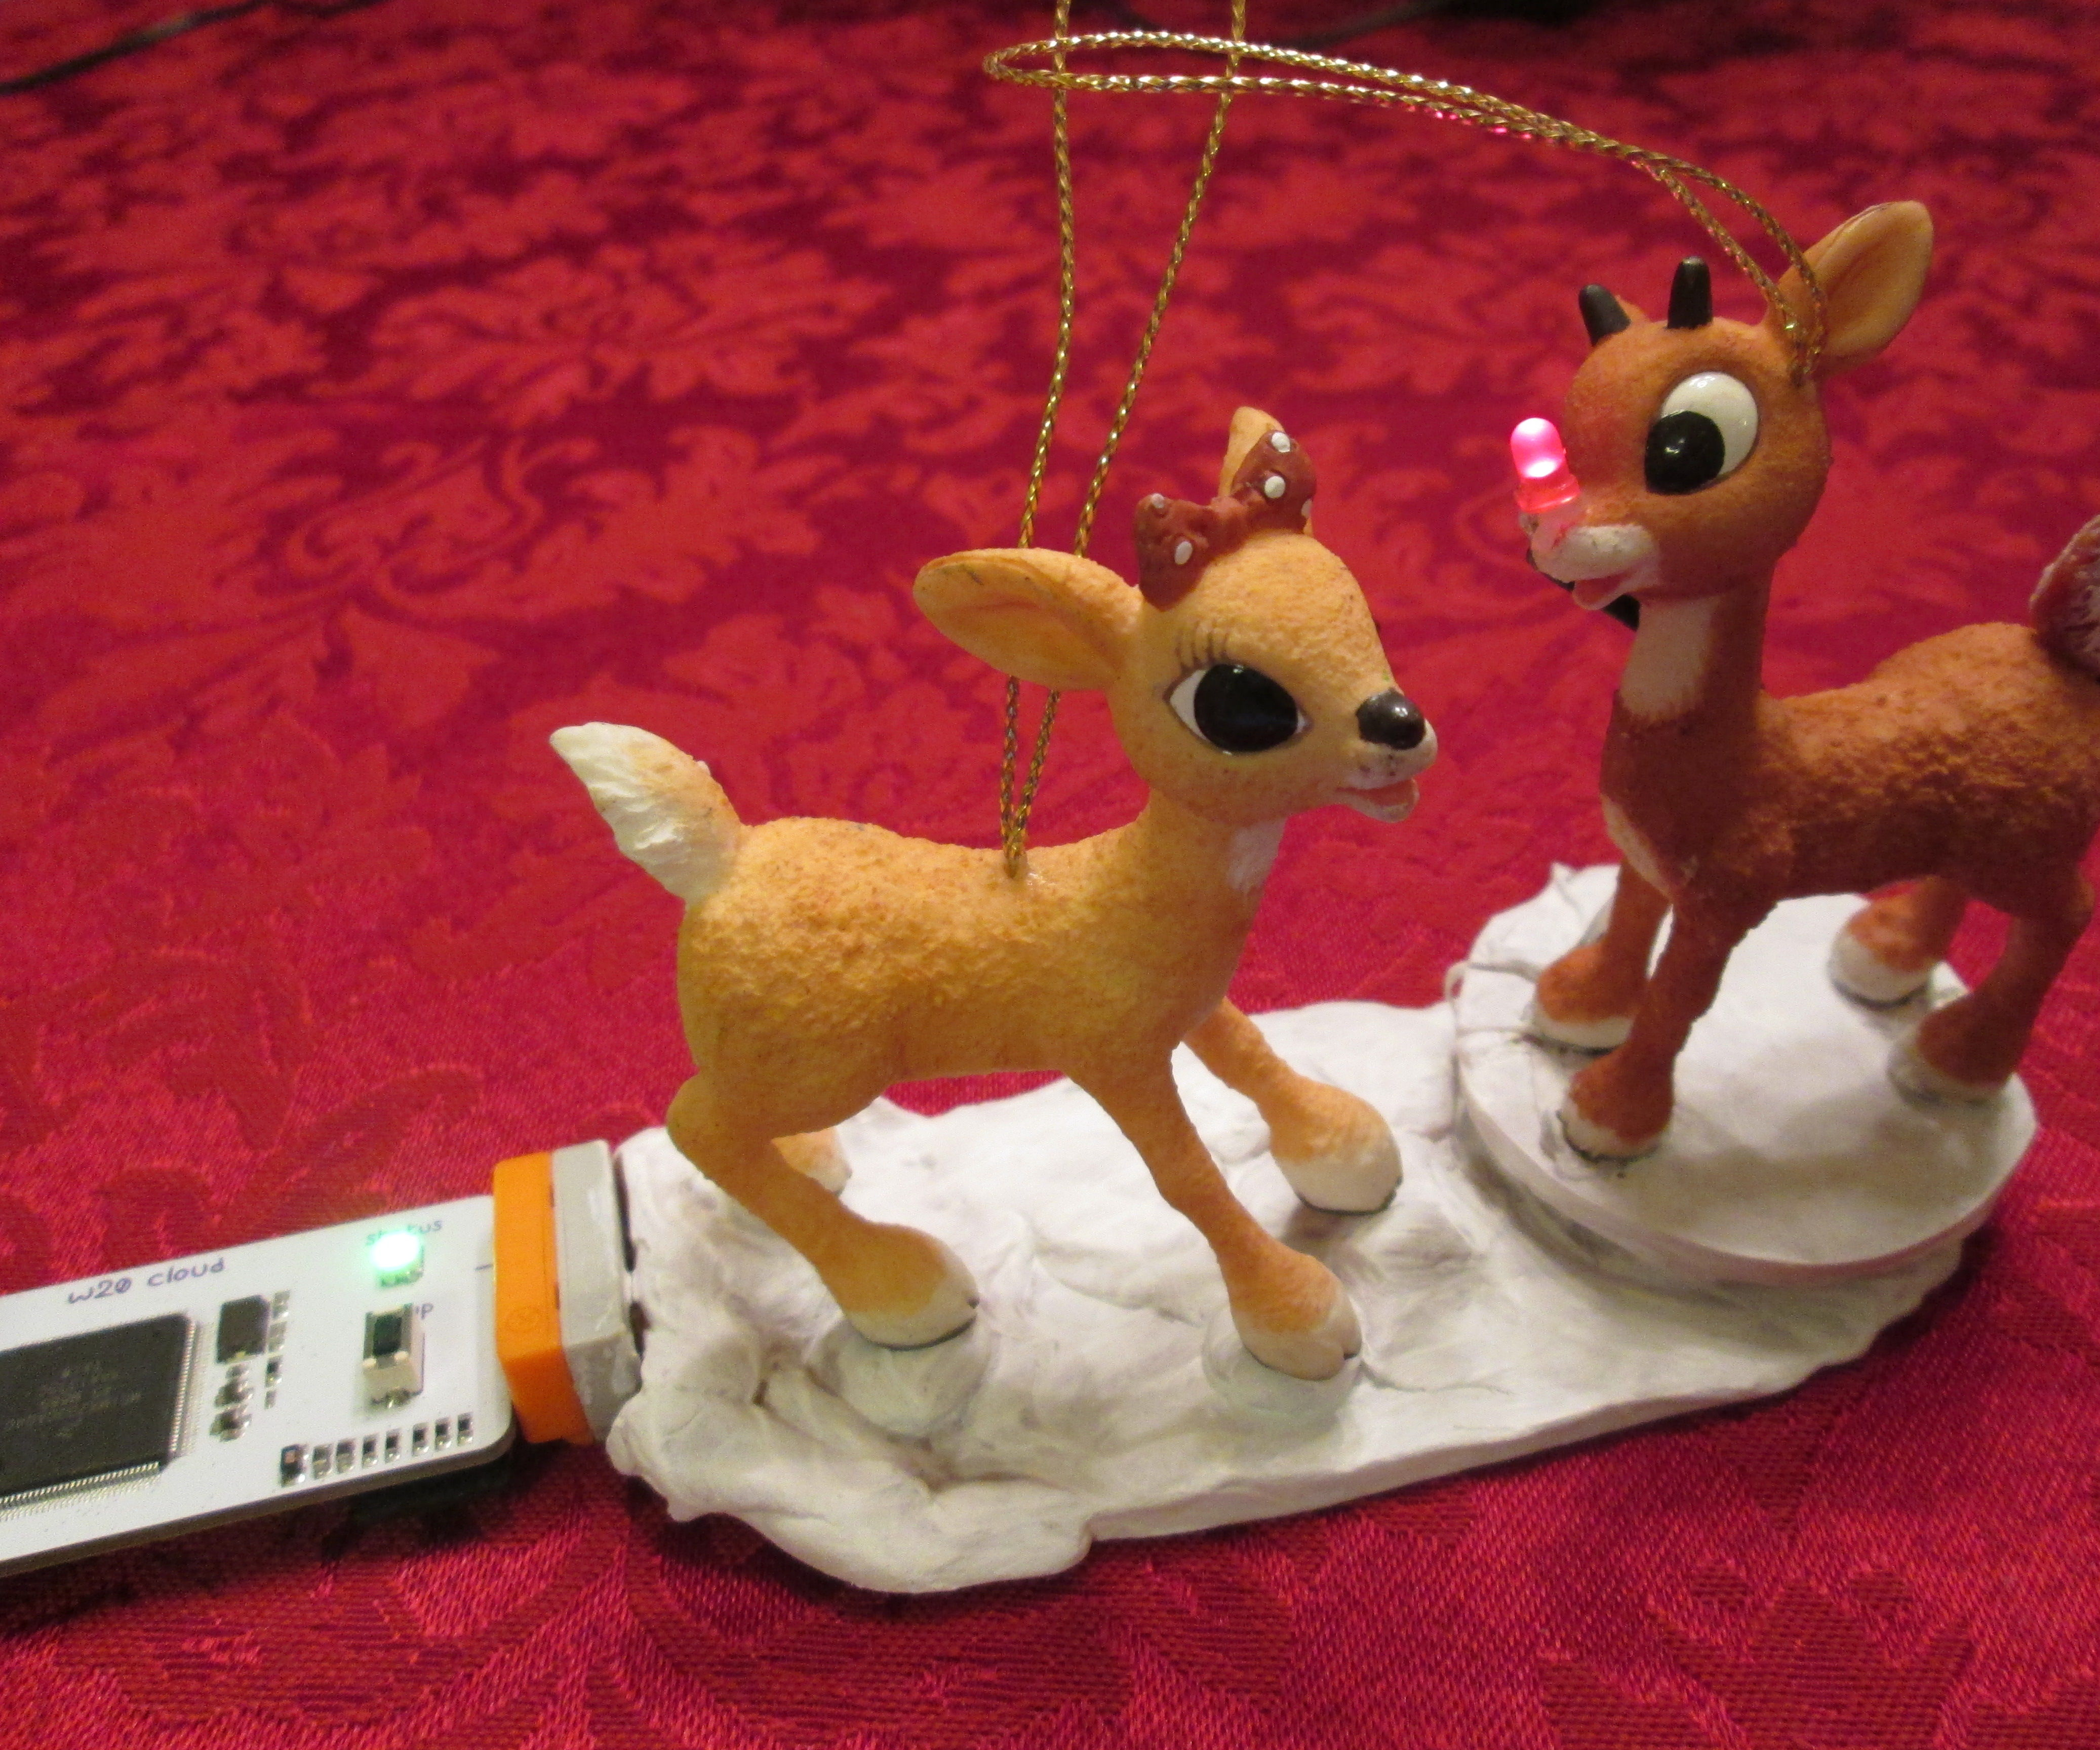 Rudolph's Nose - Internet Connected!